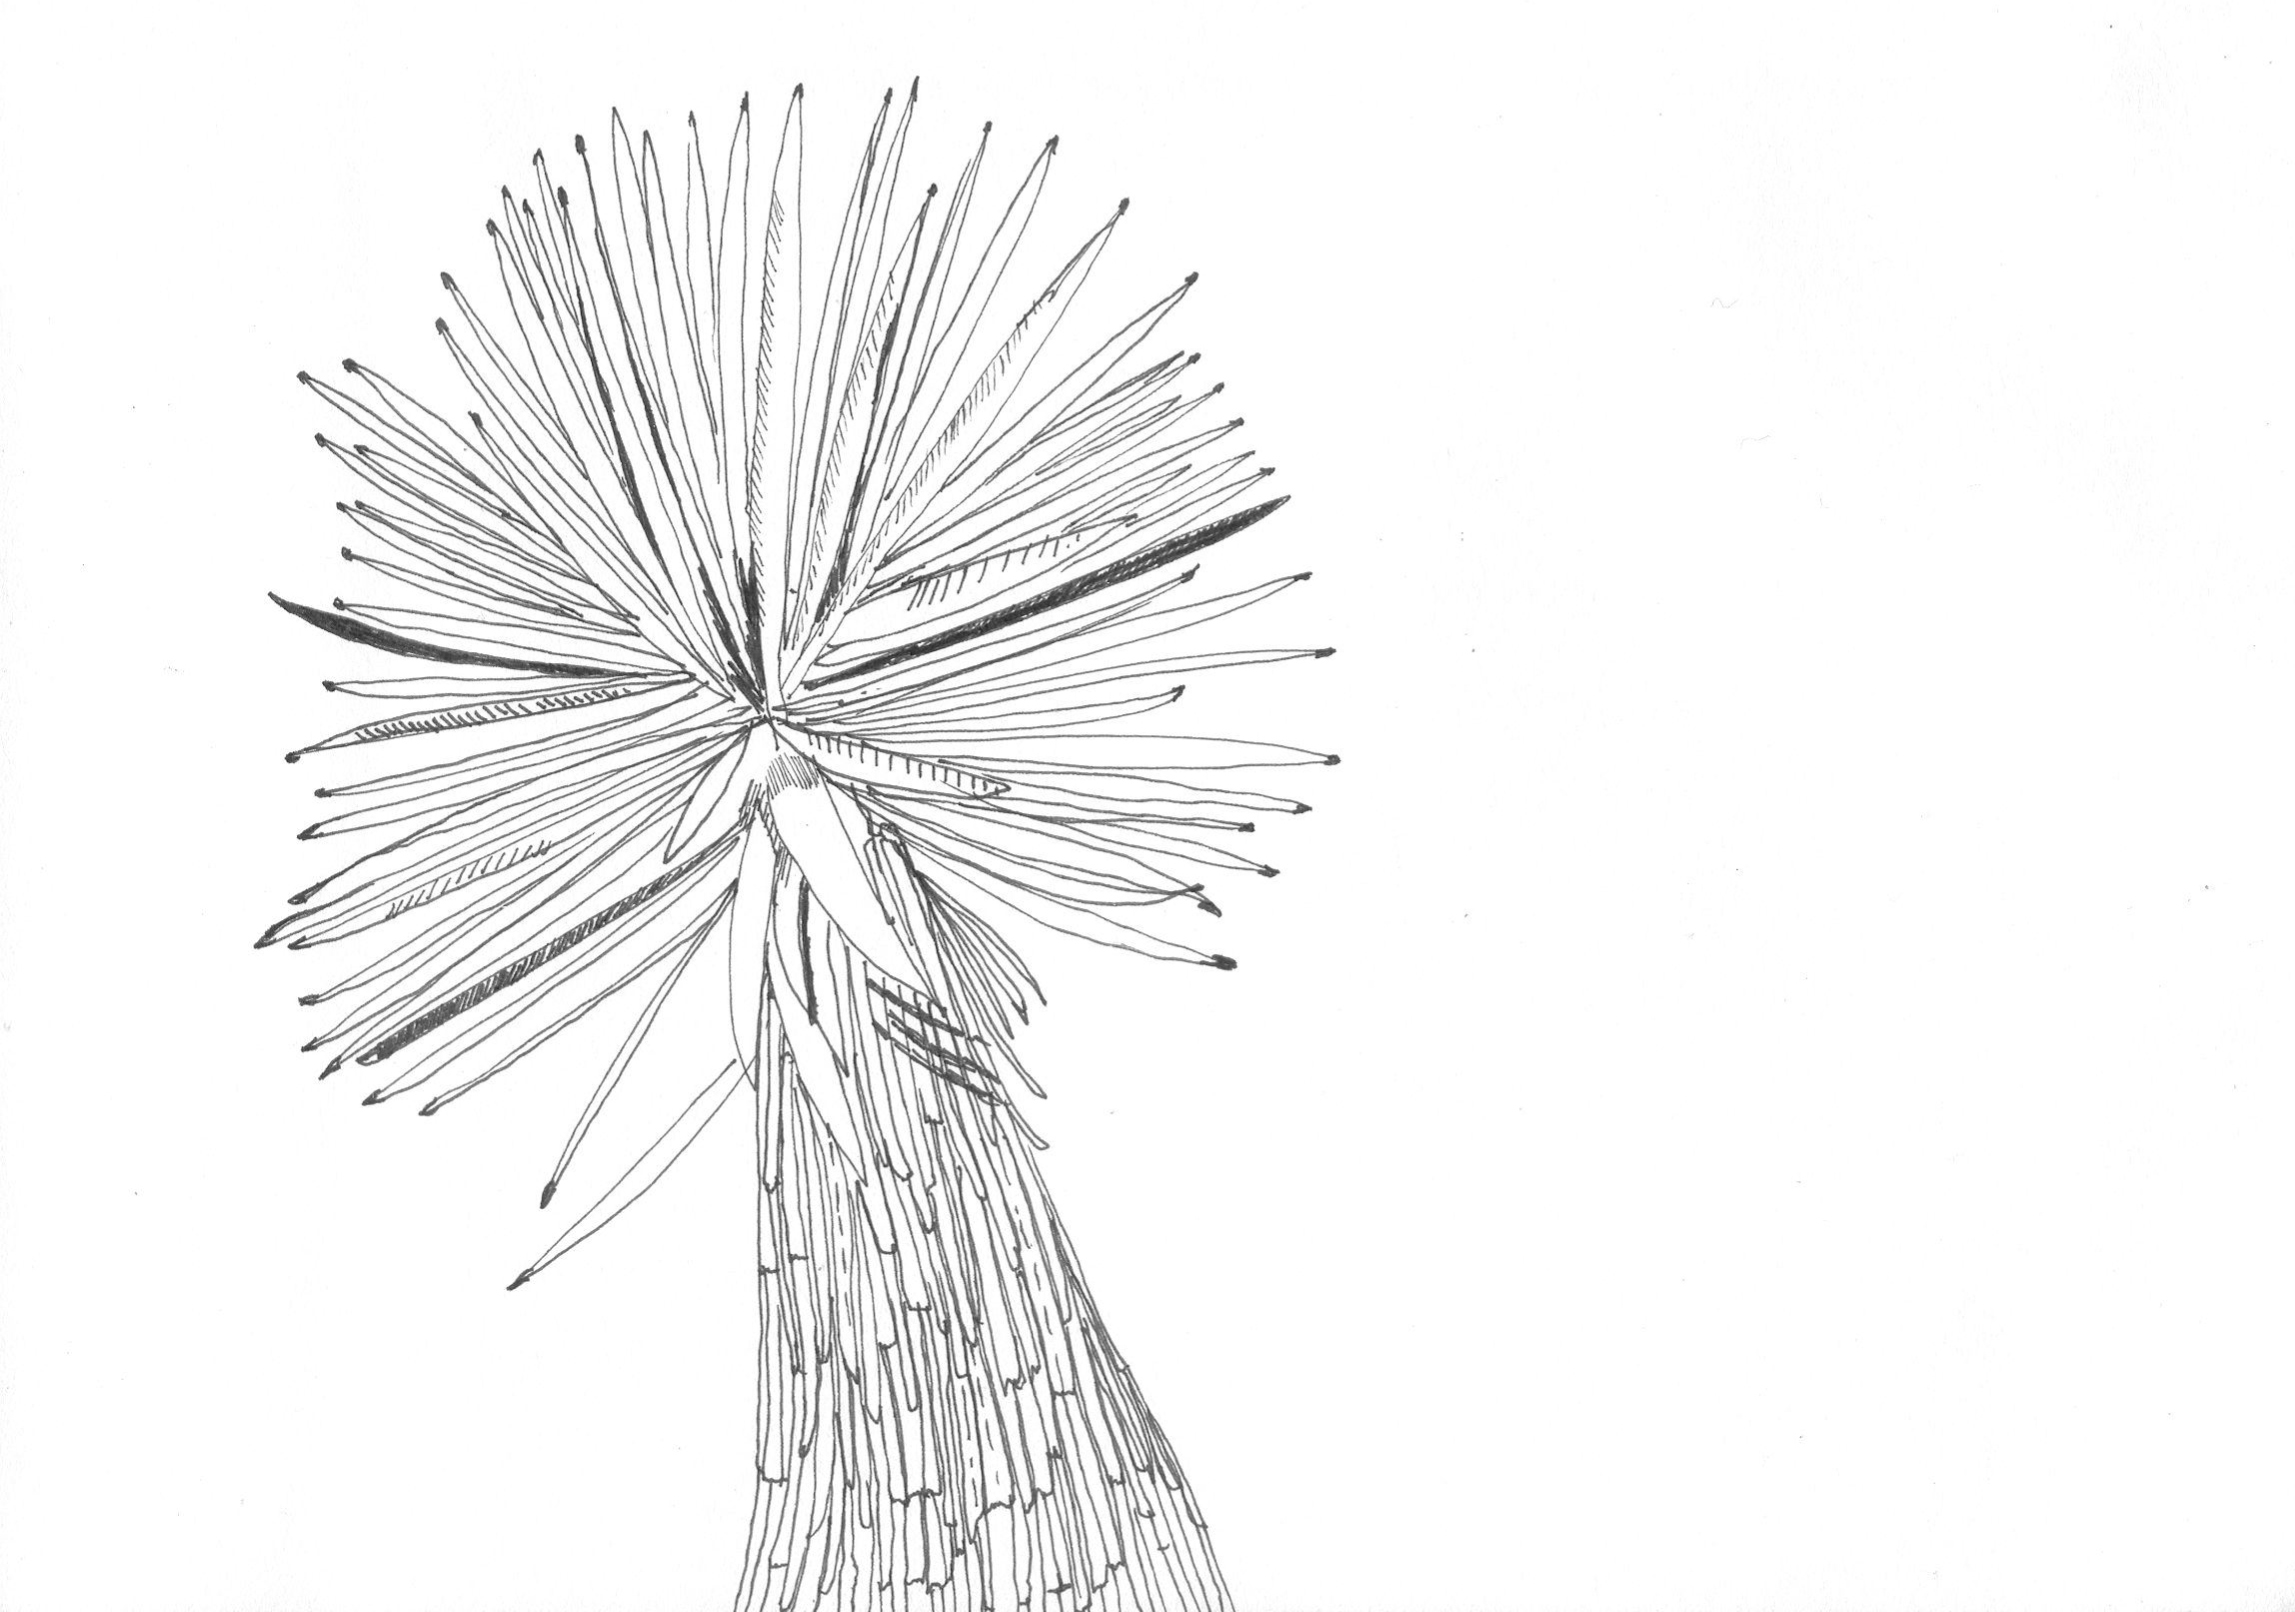 yucca; drawing by Lisa Schonberg. From Fieldguided II: Joshua Tree.